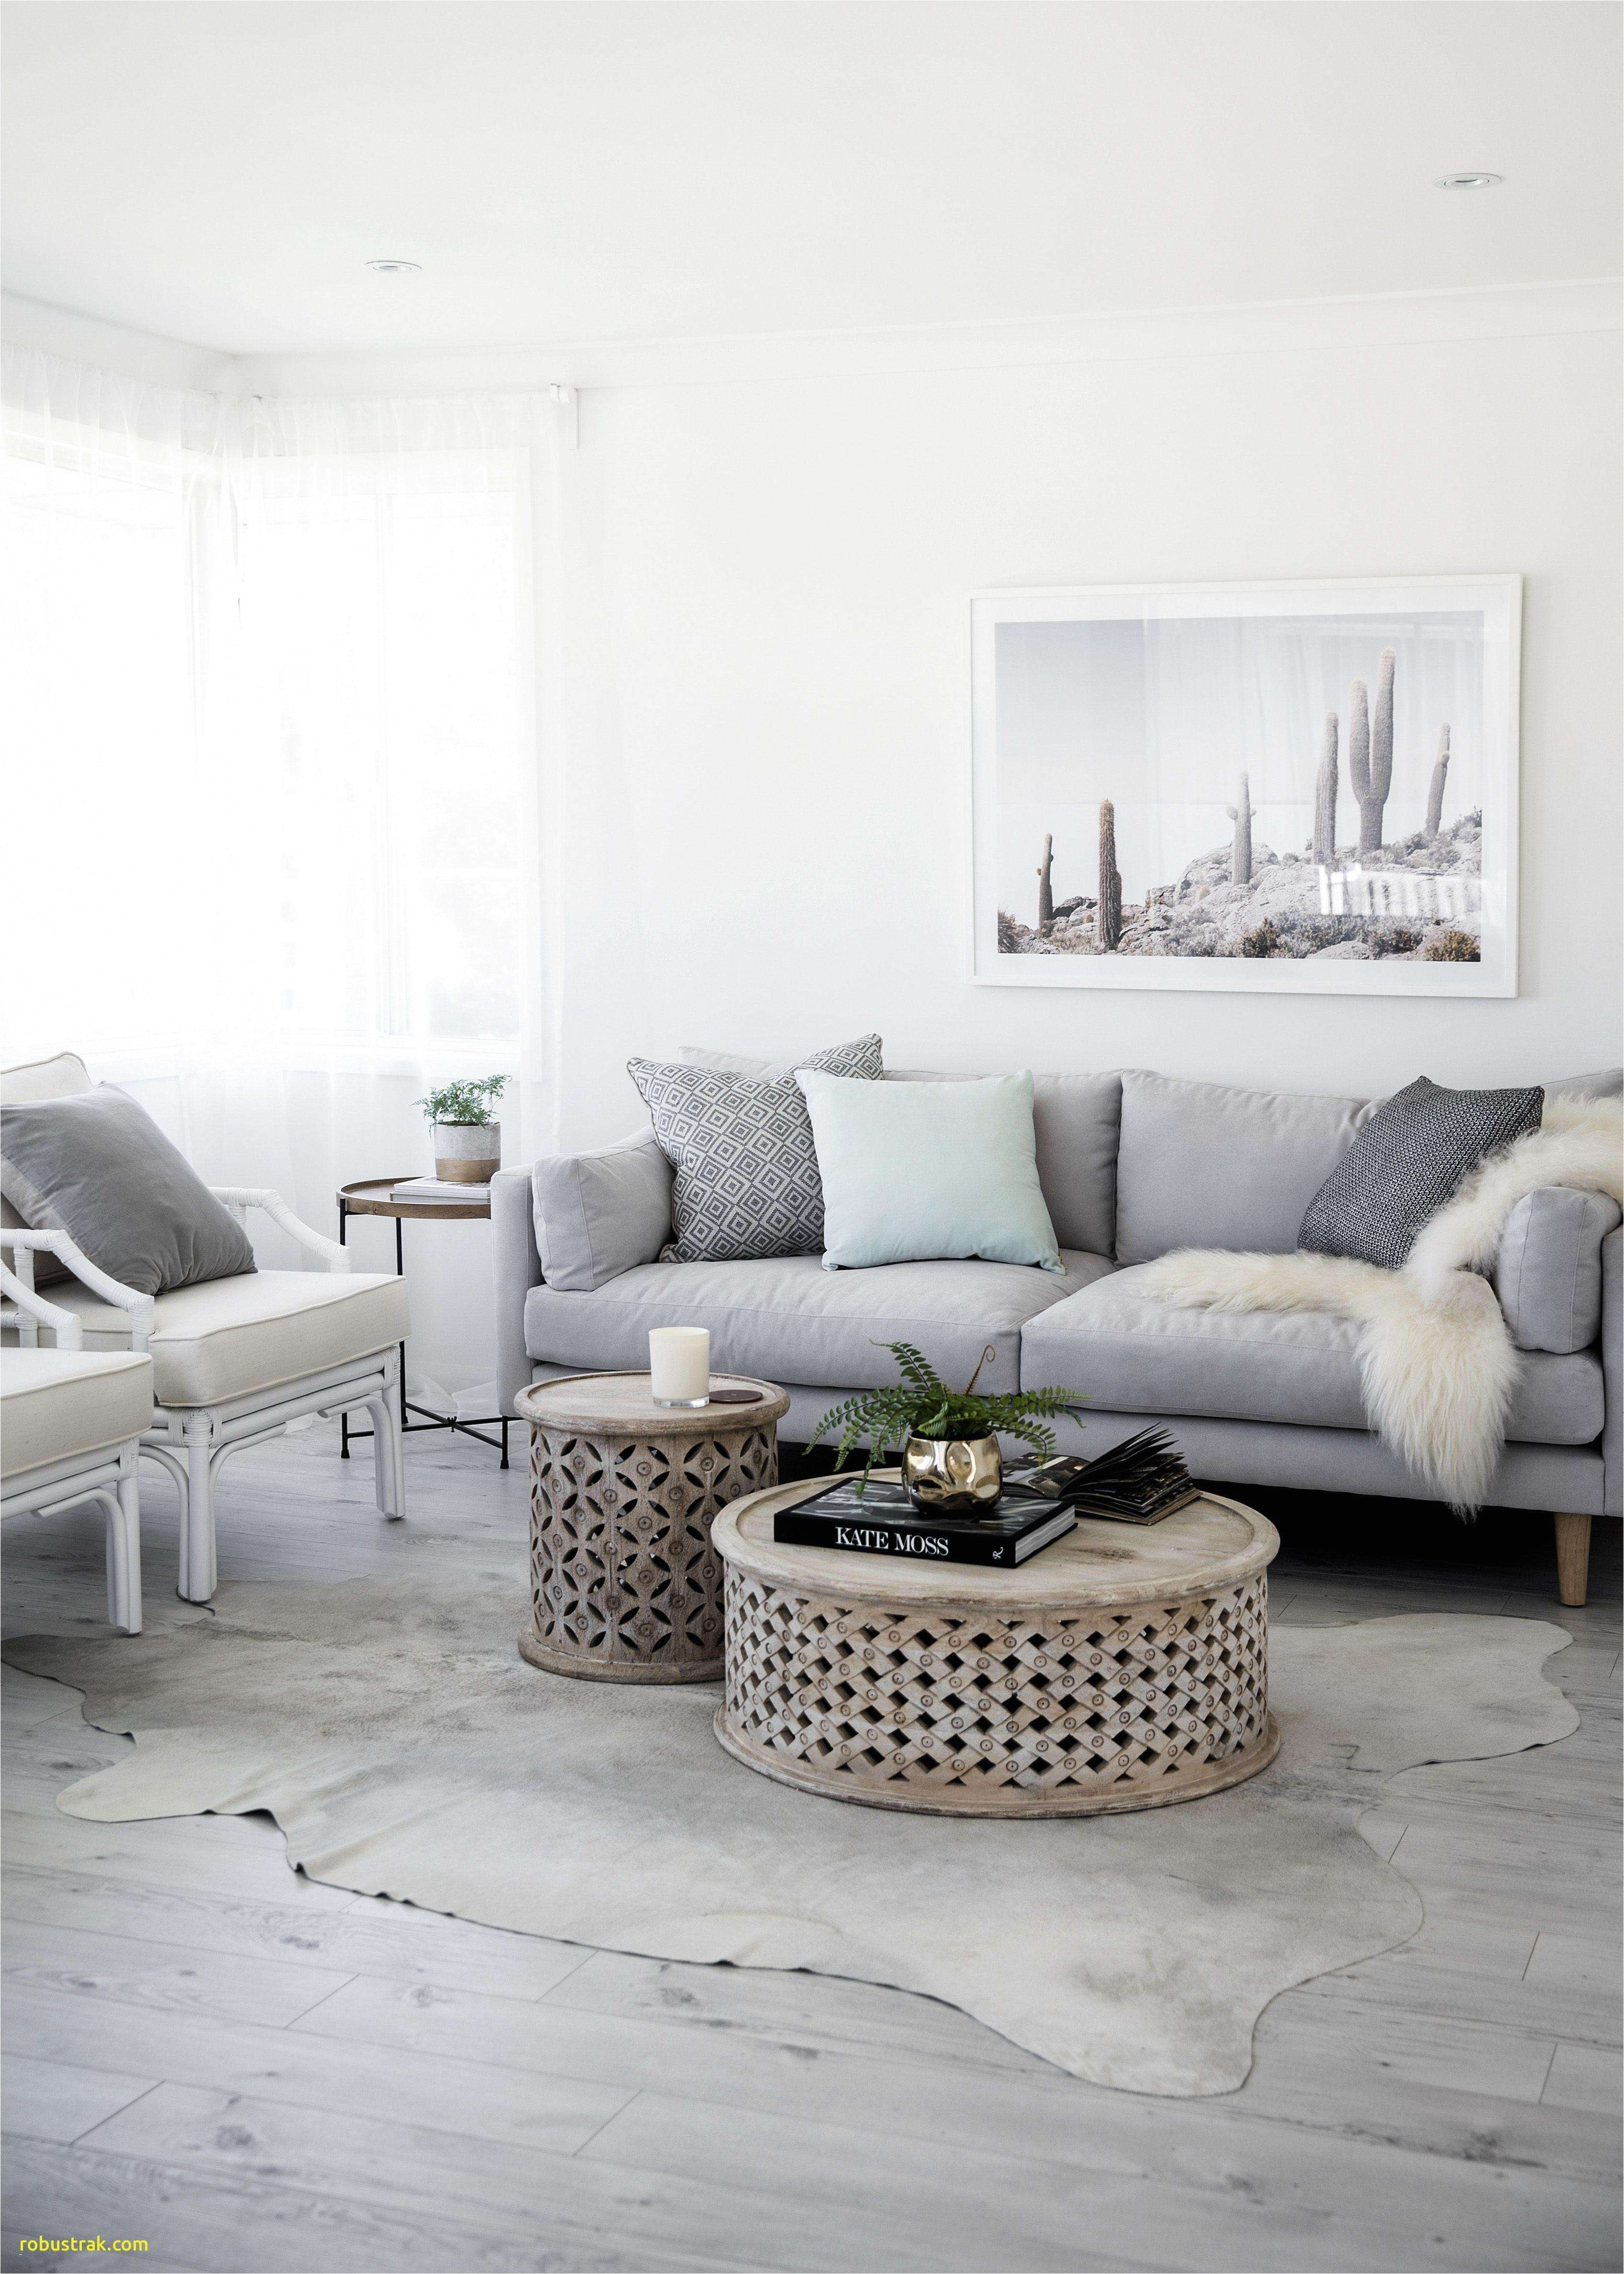 Living Room Ideas with Gray sofa Inspirational Furniture Dark Grey Couch Inspirational Wicker Outdoor sofa 0d